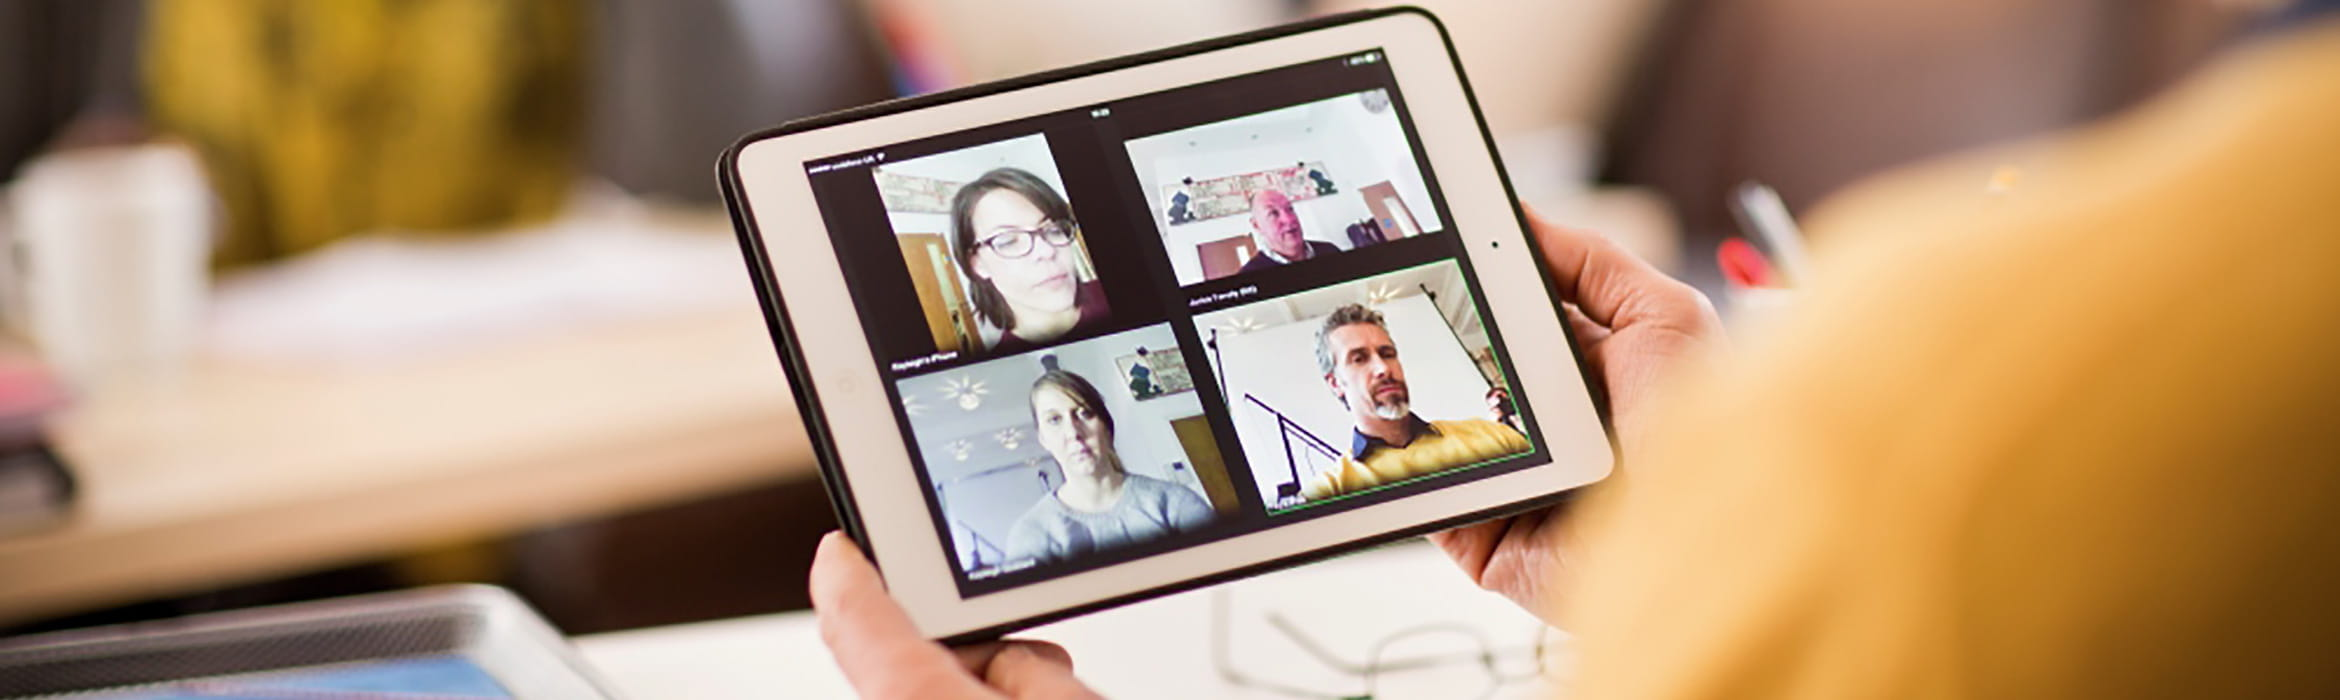 Close-up of Brother Omnijoin video and web conferencing being used on a tablet device